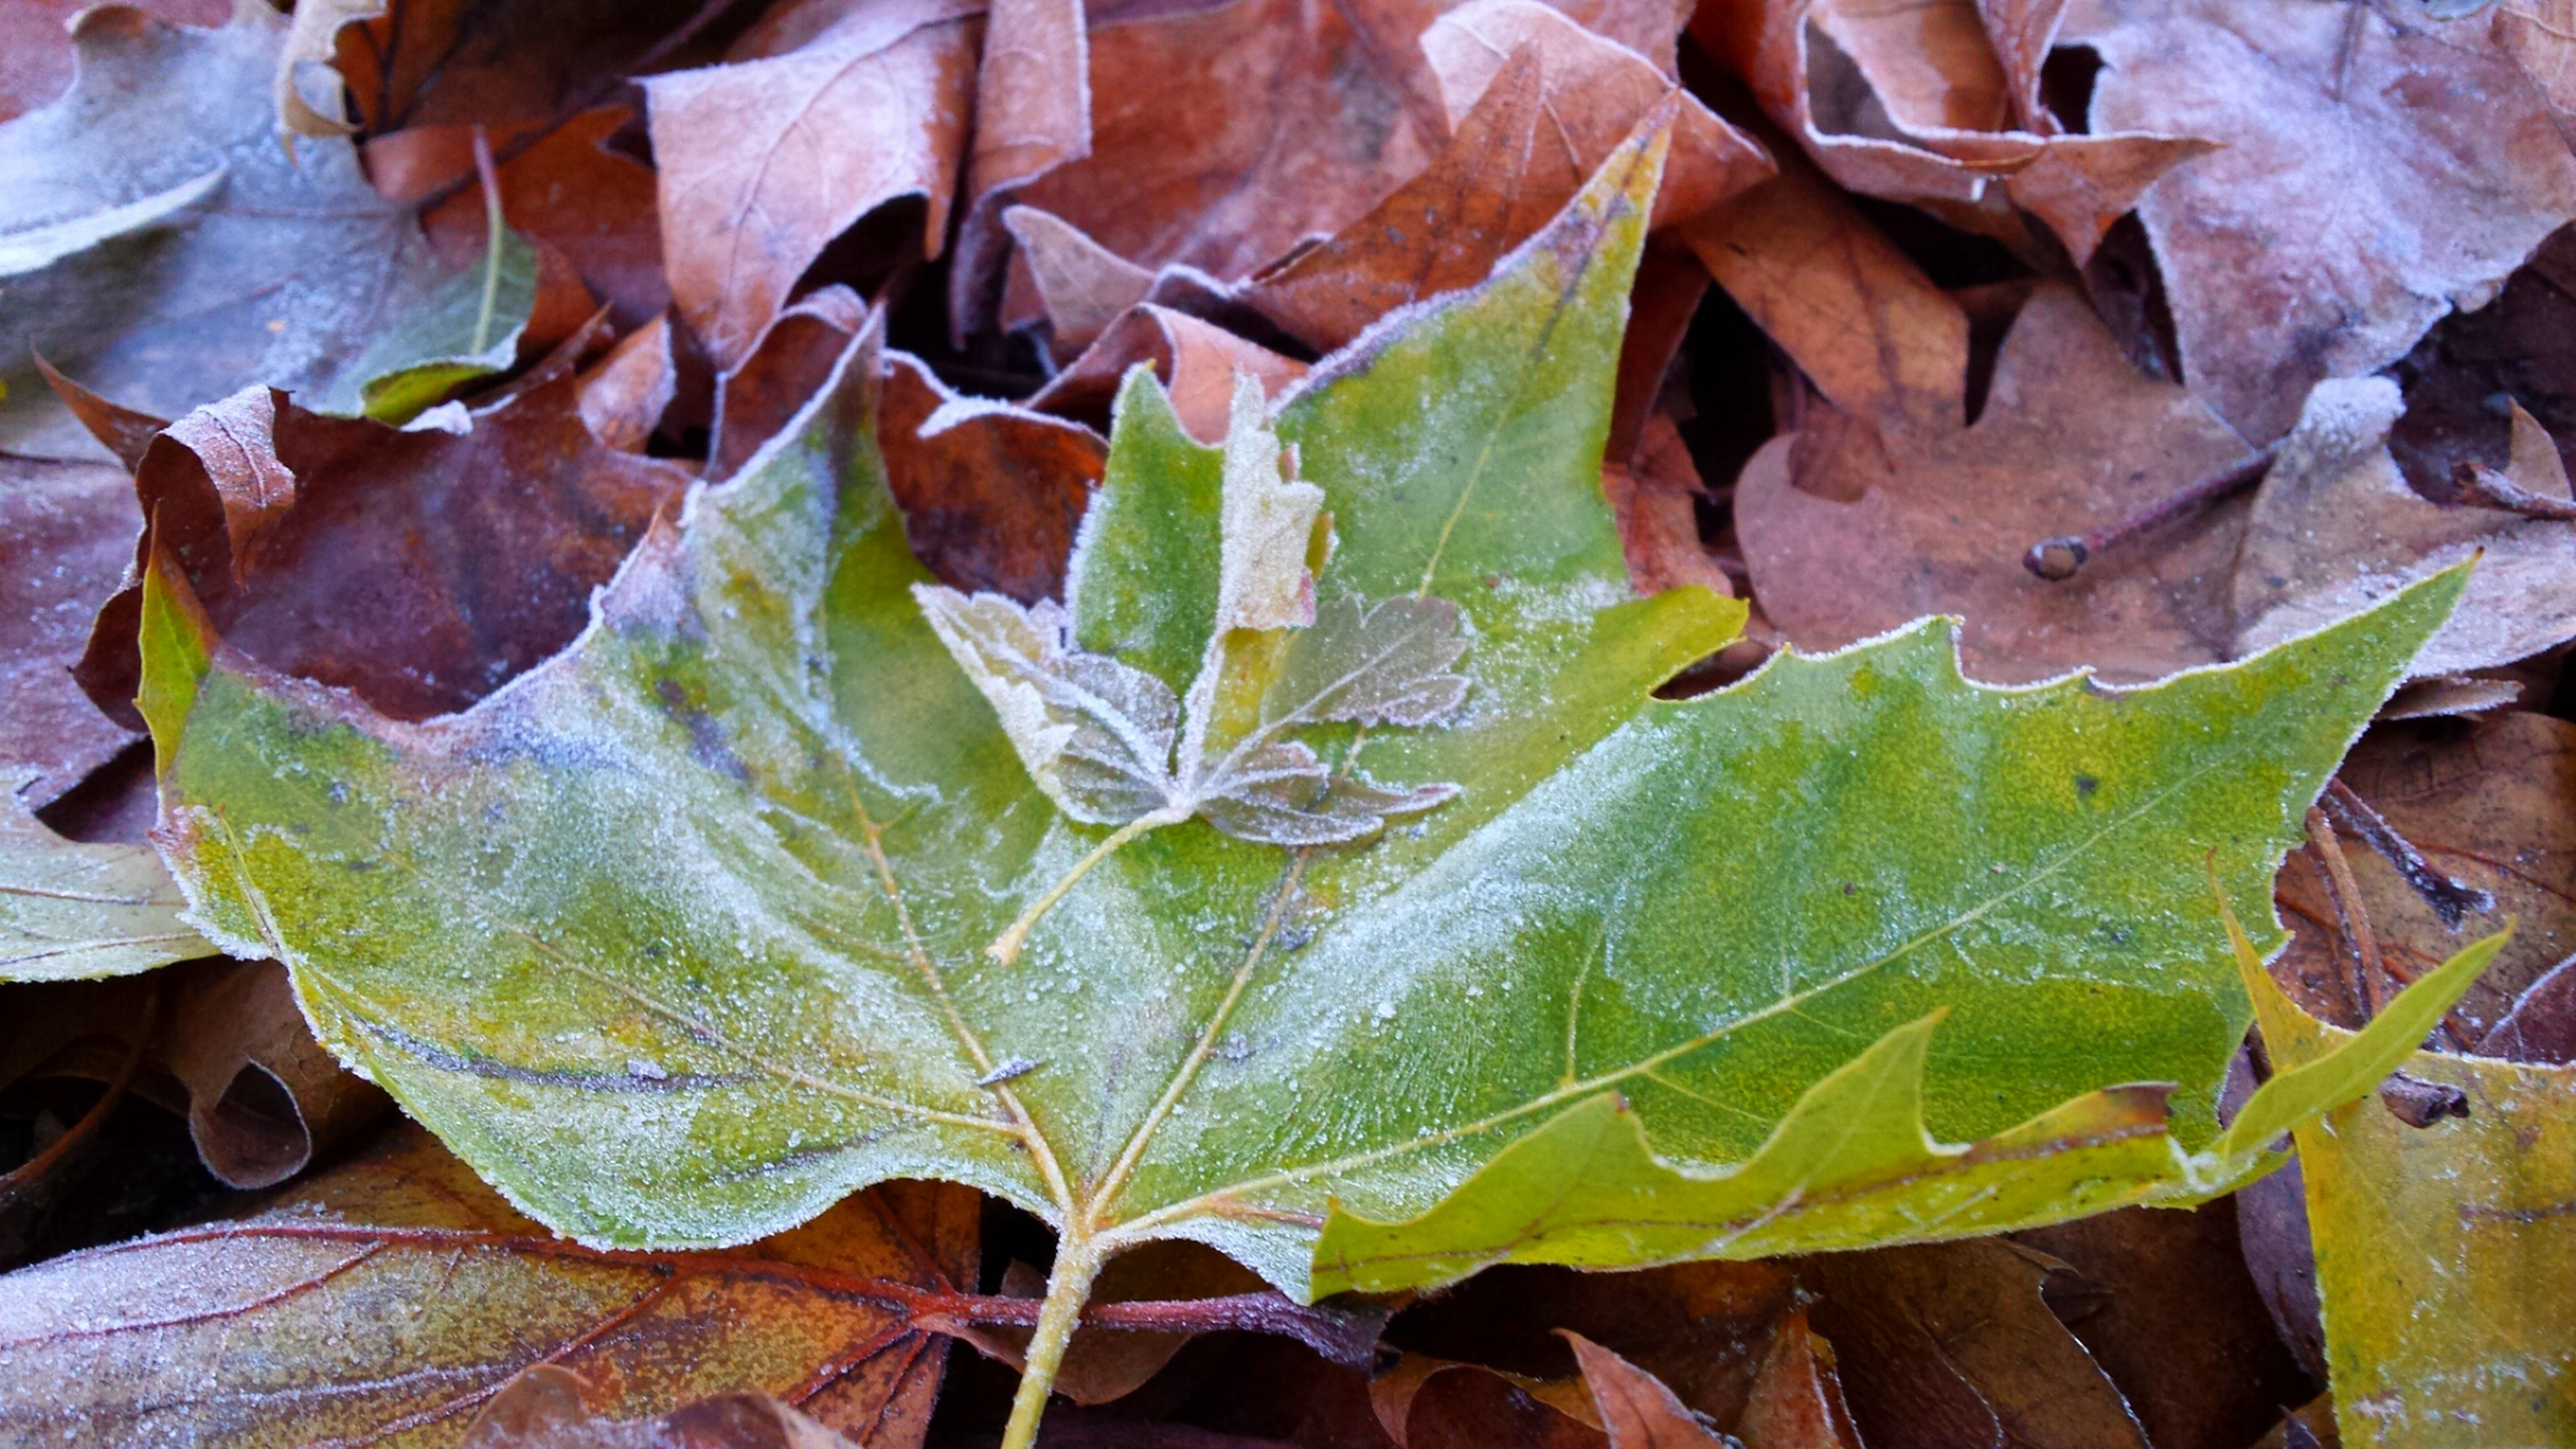 leaf, leaf vein, leaves, autumn, season, natural pattern, change, close-up, nature, full frame, dry, backgrounds, tranquility, beauty in nature, high angle view, outdoors, day, water, growth, fragility